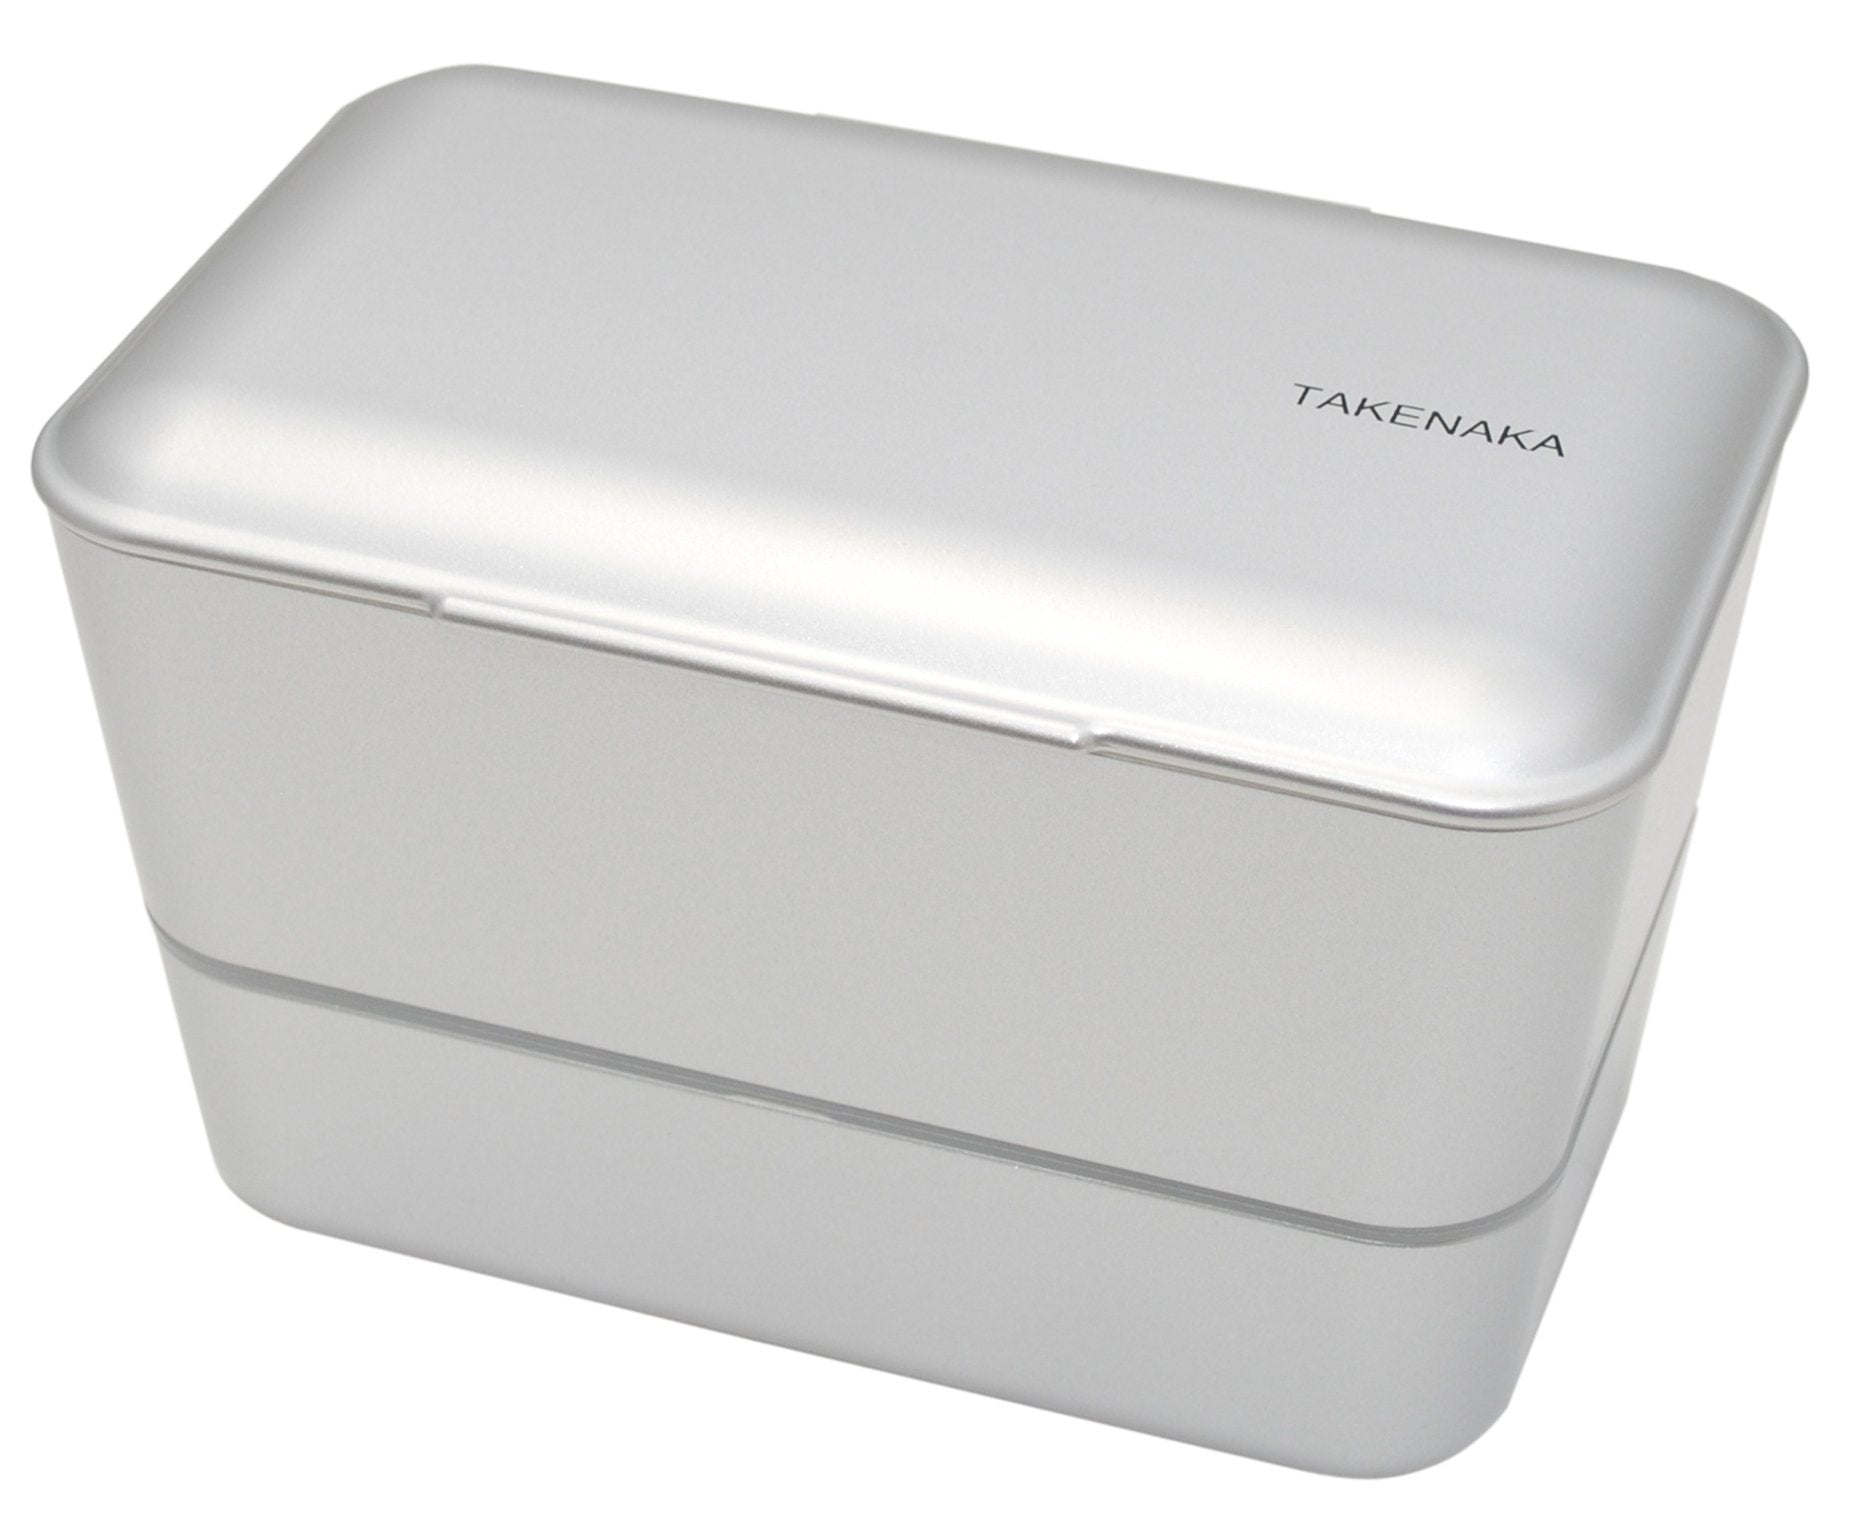 Expanded Double Bento Box | Silver by Takenaka - Bento&co Japanese Bento Lunch Boxes and Kitchenware Specialists